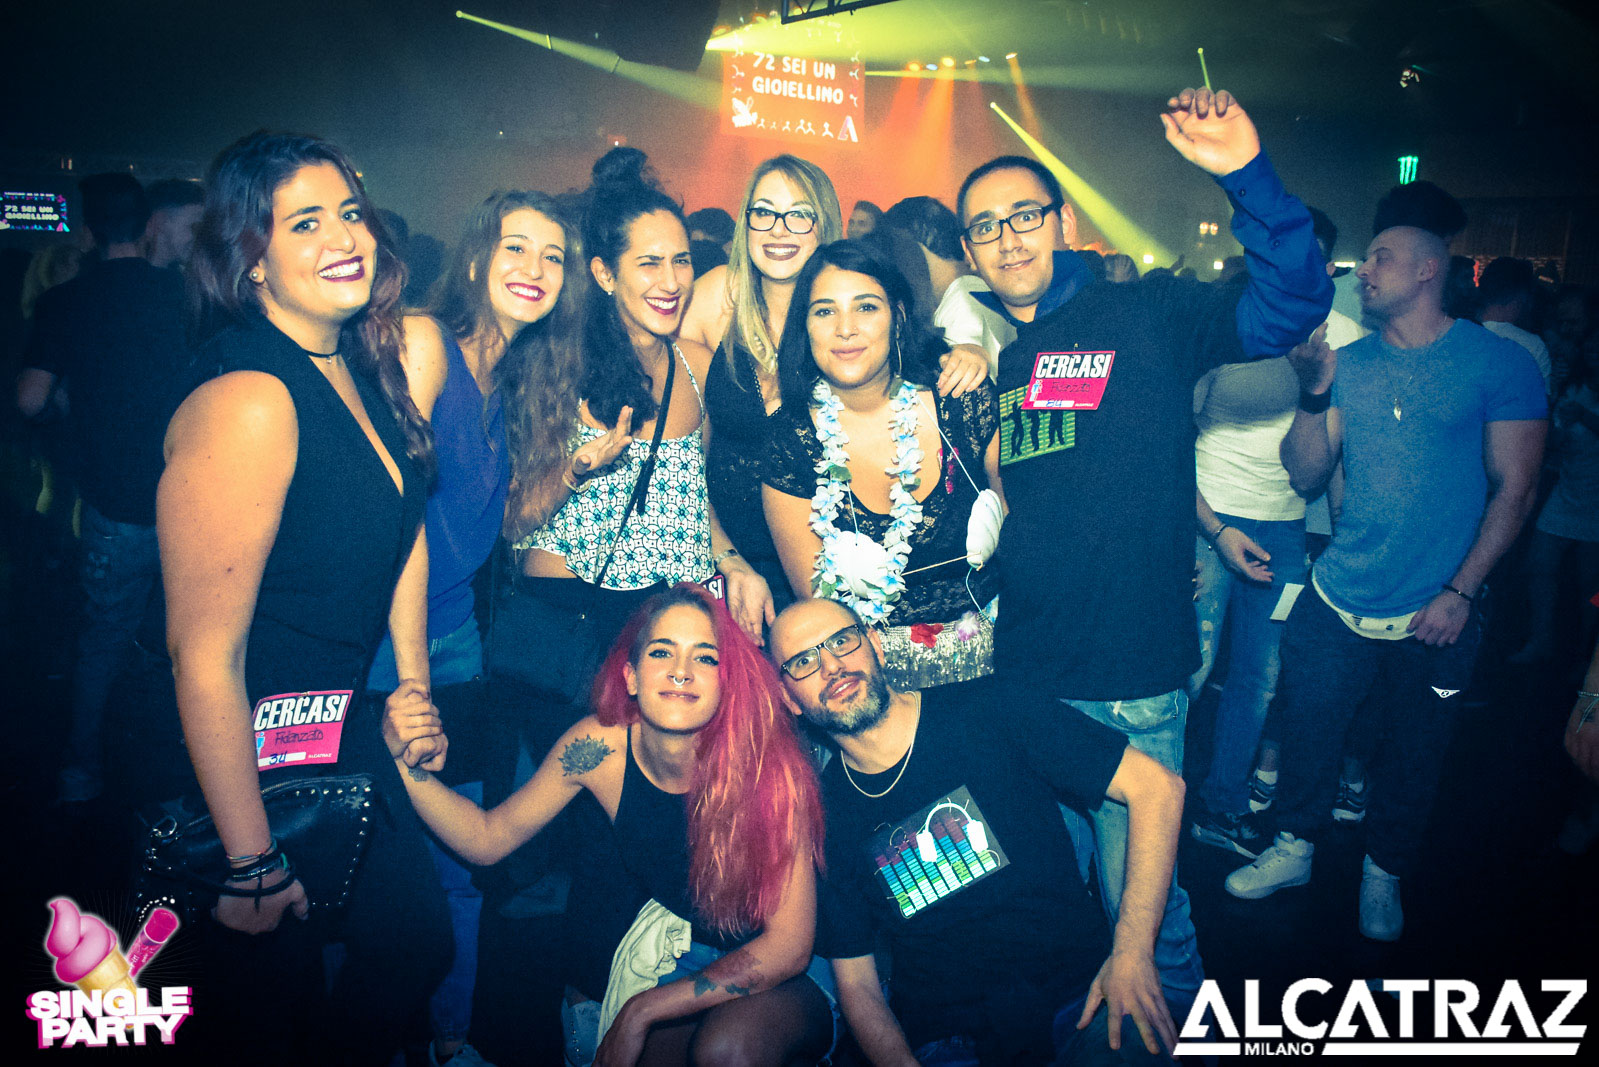 single-party-milano-alcatraz-27